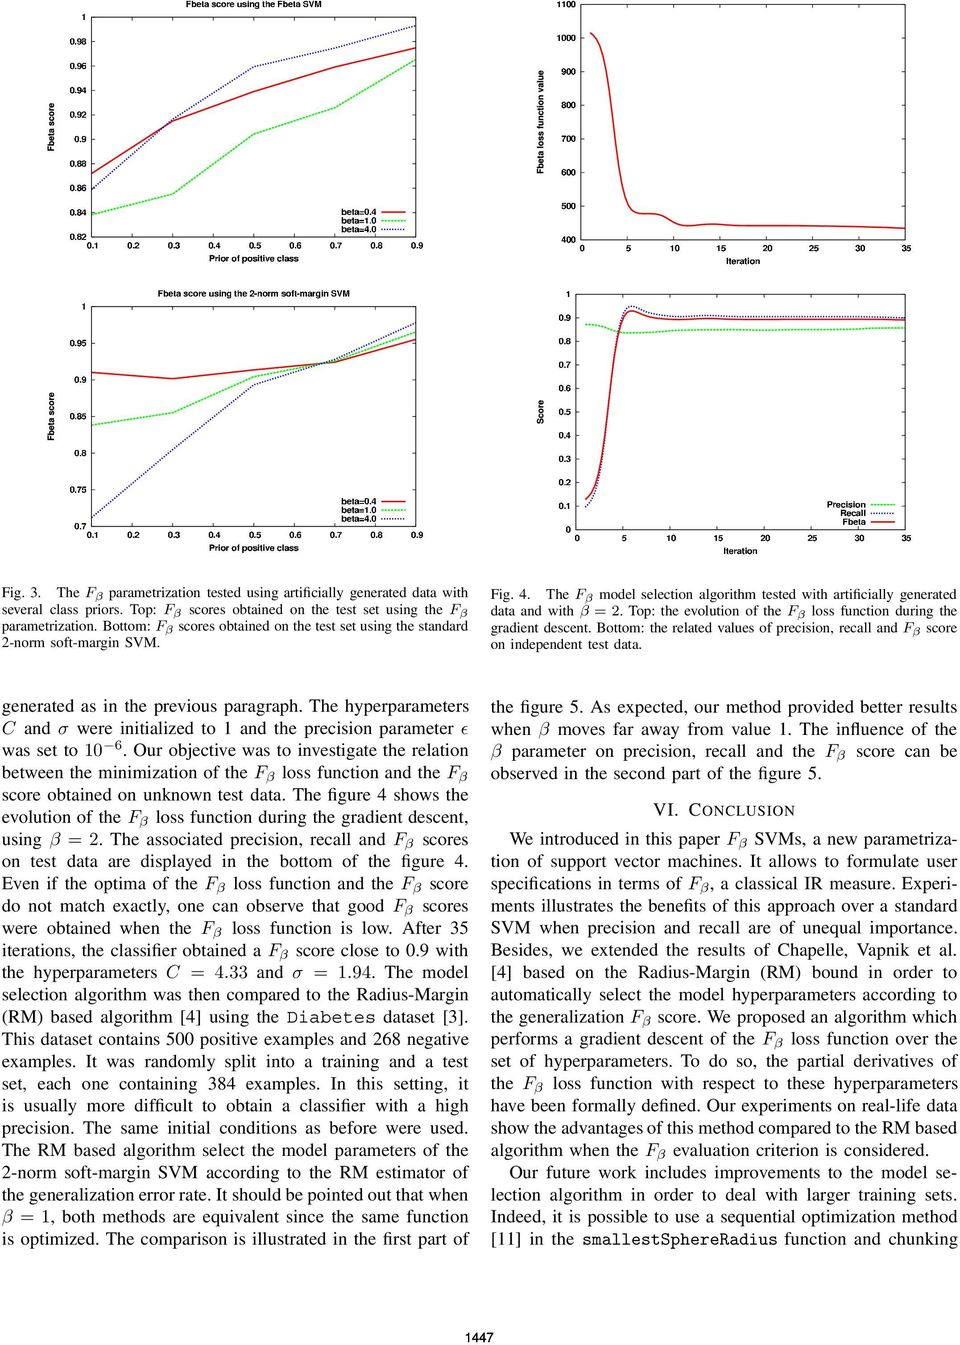 Top: the evolution of the F β loss function during the gradient descent. Bottom: the related values of precision, recall and F β score on independent test data. generated as in the previous paragraph.